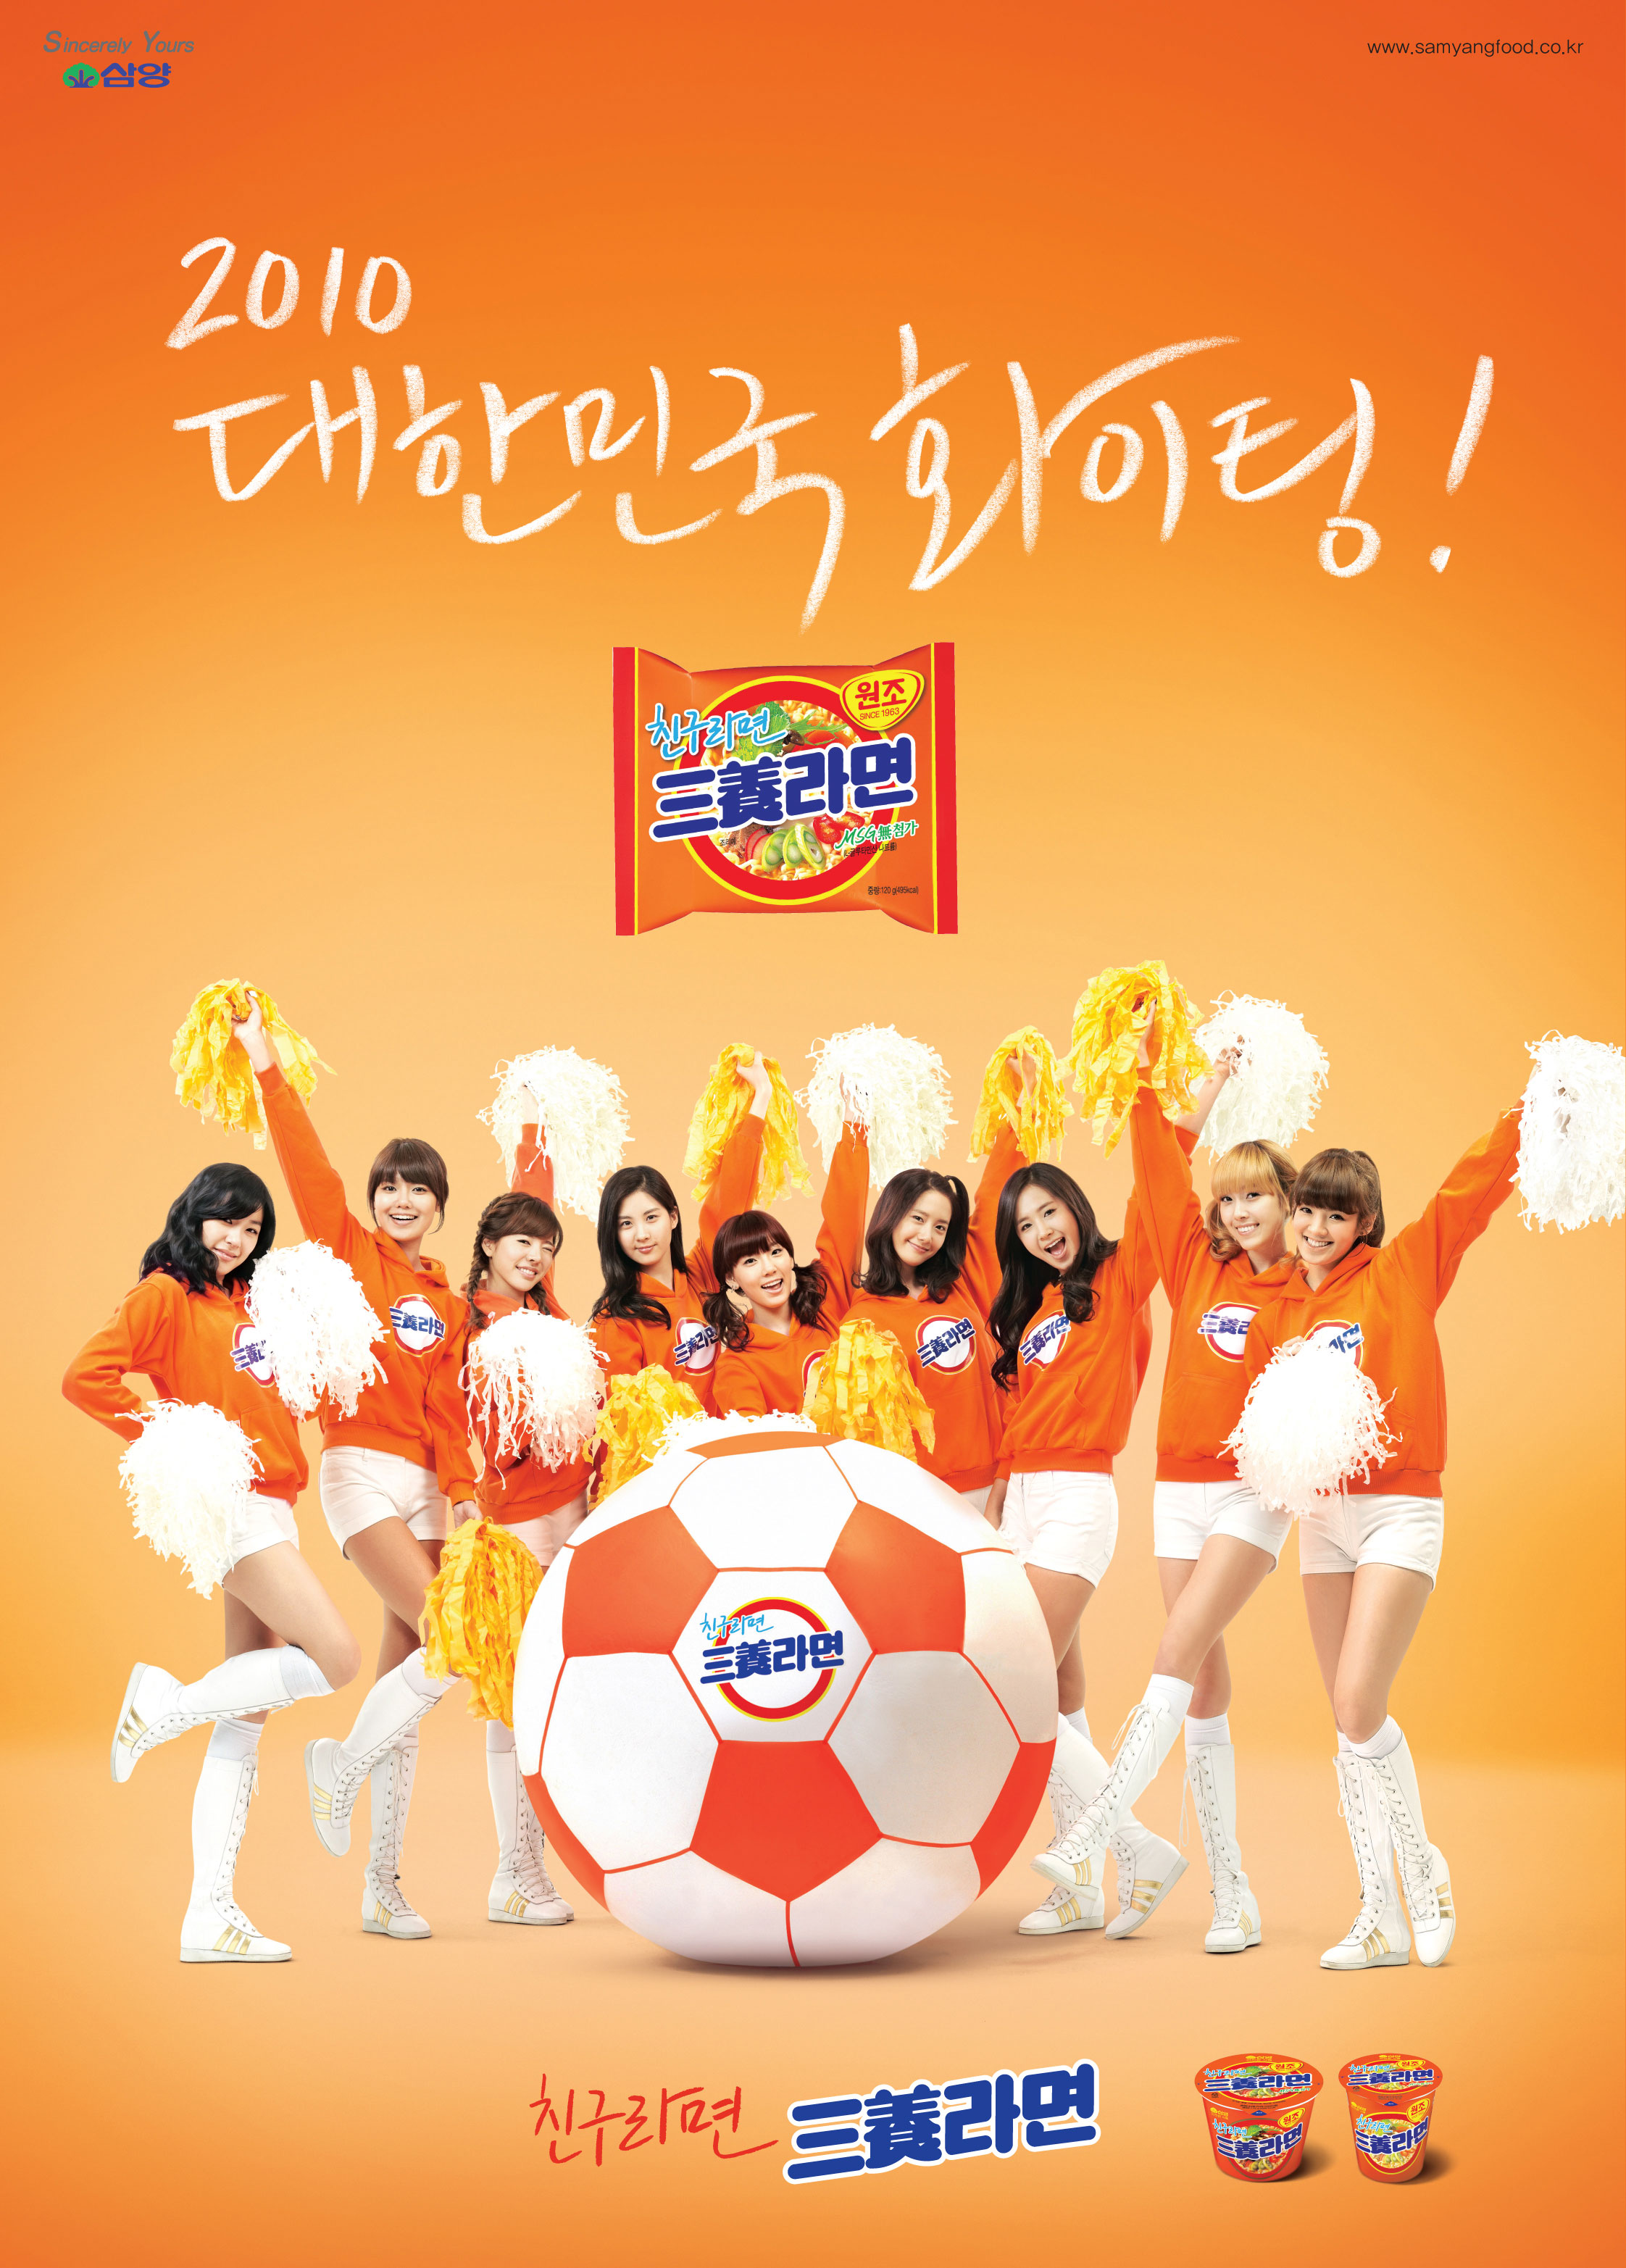 Samyang SNSD HD picture